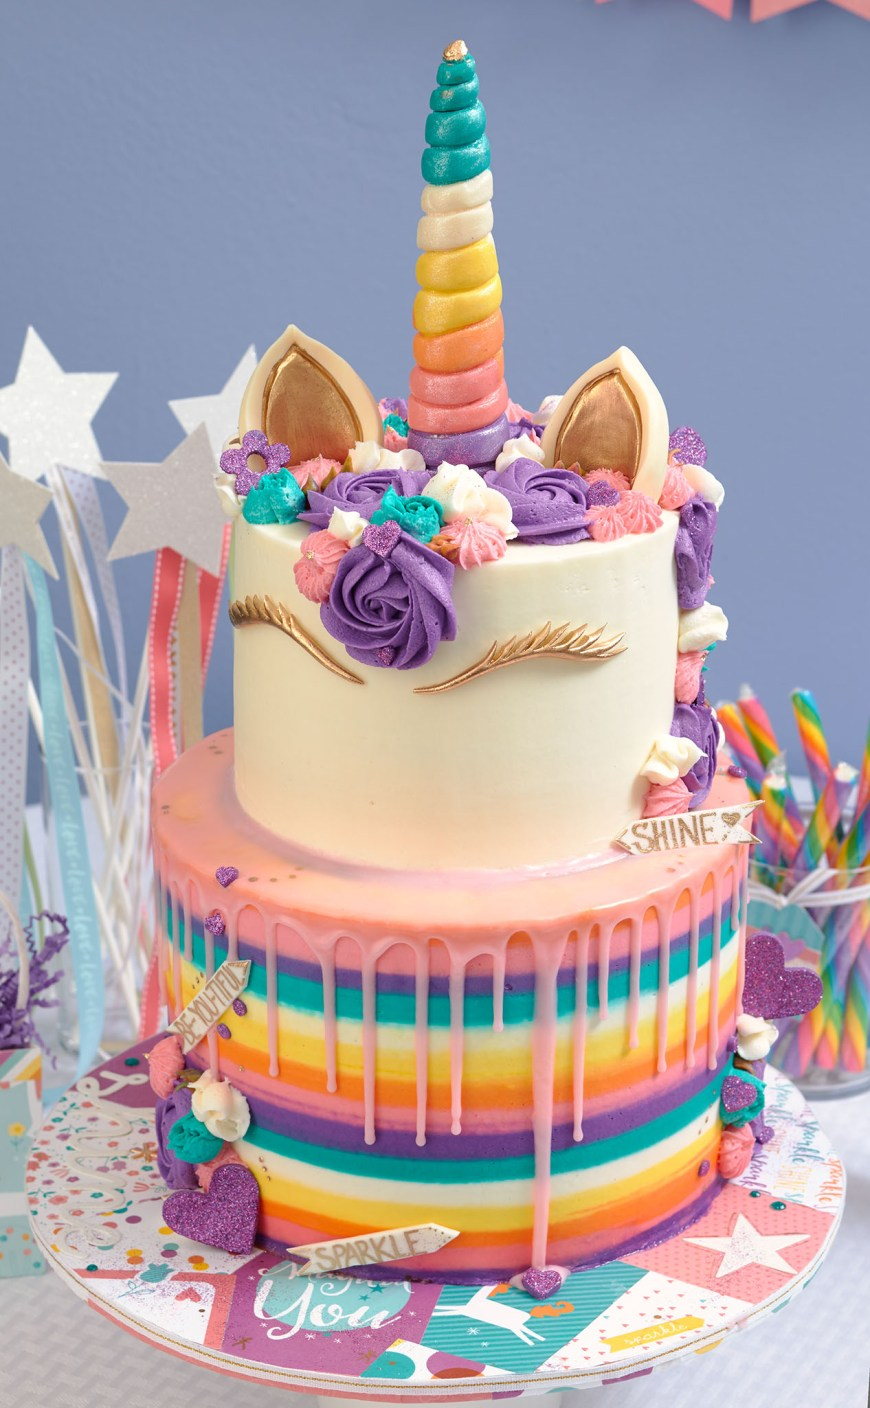 Unicorn Birthday Cake This Unicorn Party Takes The Cake Make It From Your Heart